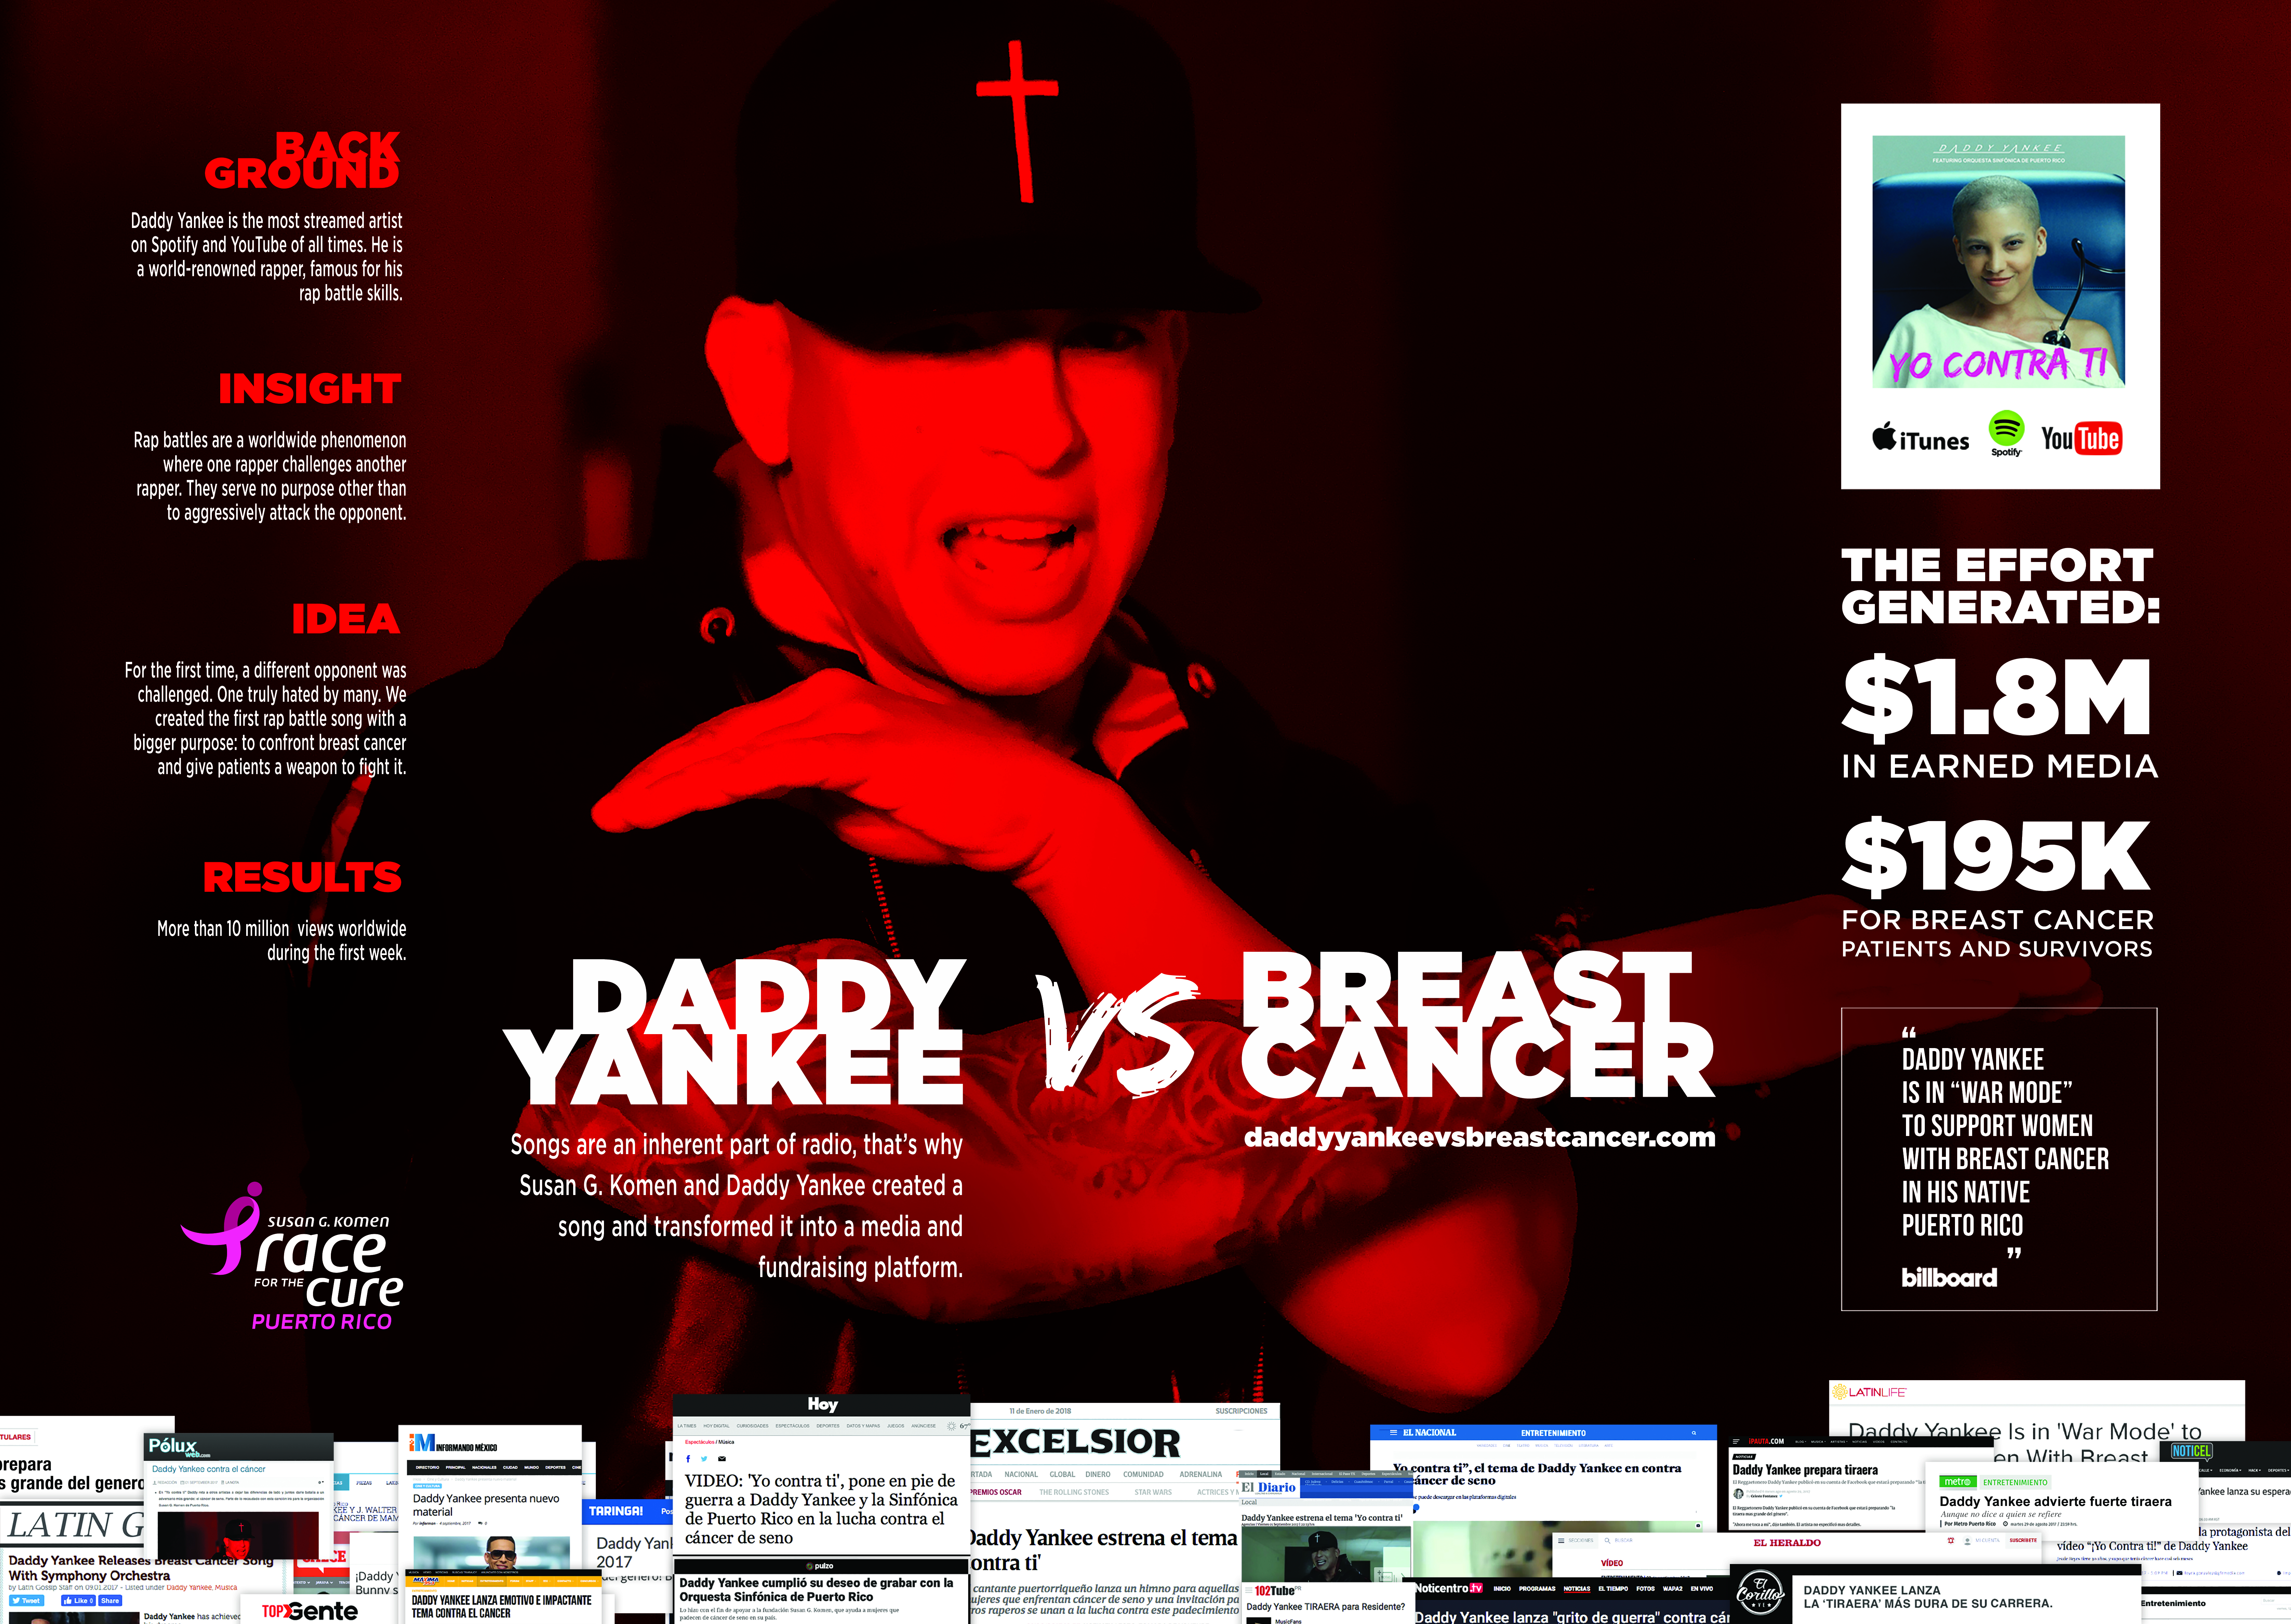 Daddy Yankee vs. Breast Cancer Thumbnail